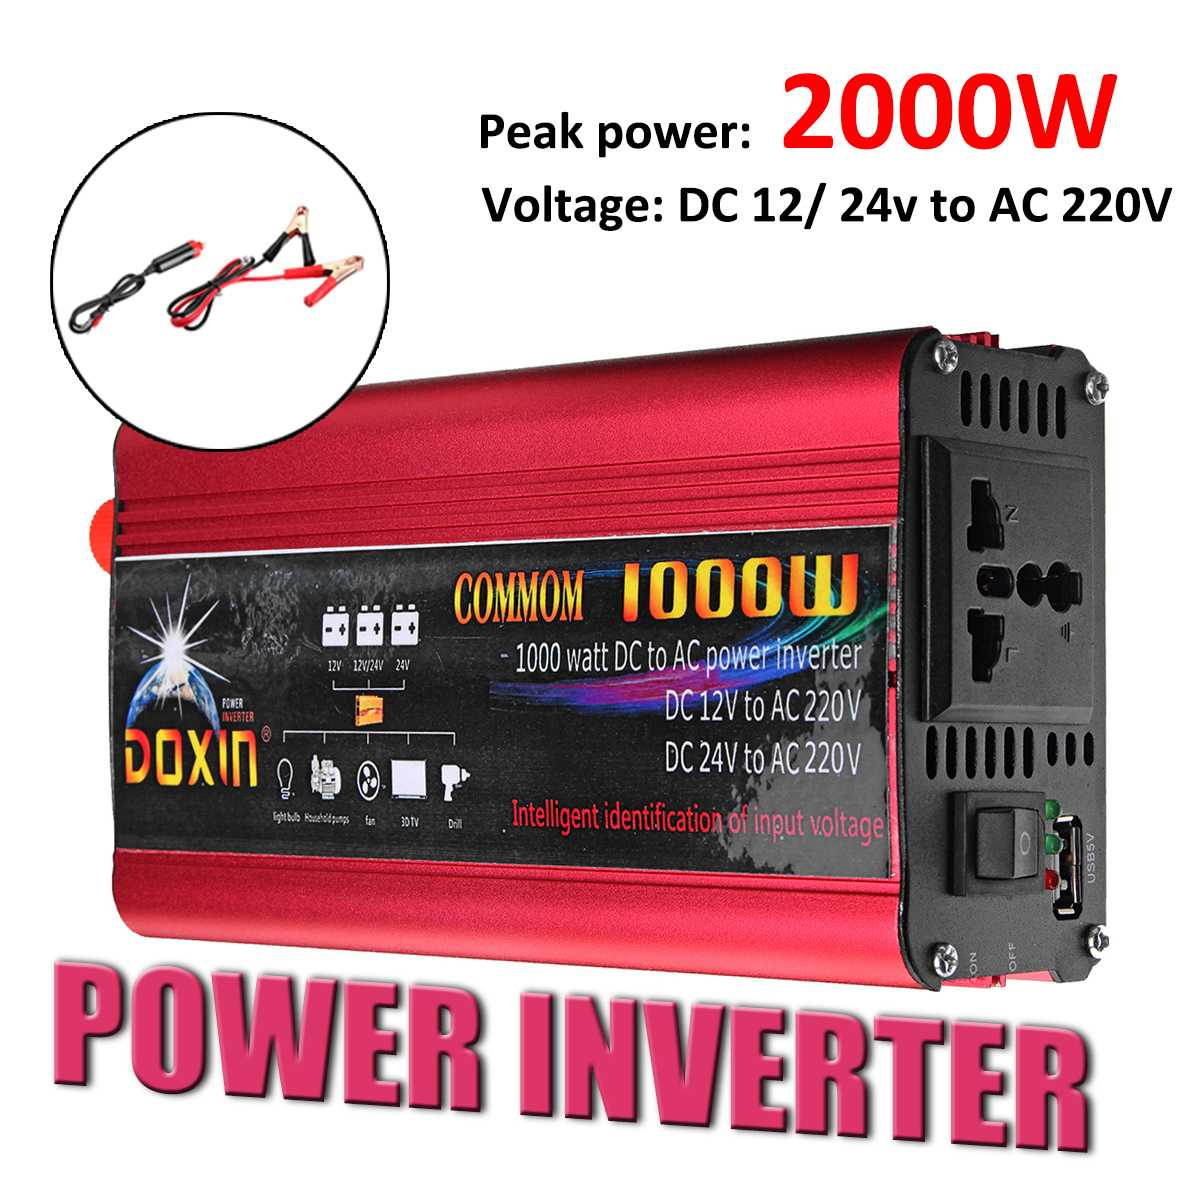 2000W Car Inverter 12 220 Auto Power Inverter Charger Converter Adapter USB Plug Port Modified Sine Wave DC 12V 24V To AC 220V2000W Car Inverter 12 220 Auto Power Inverter Charger Converter Adapter USB Plug Port Modified Sine Wave DC 12V 24V To AC 220V